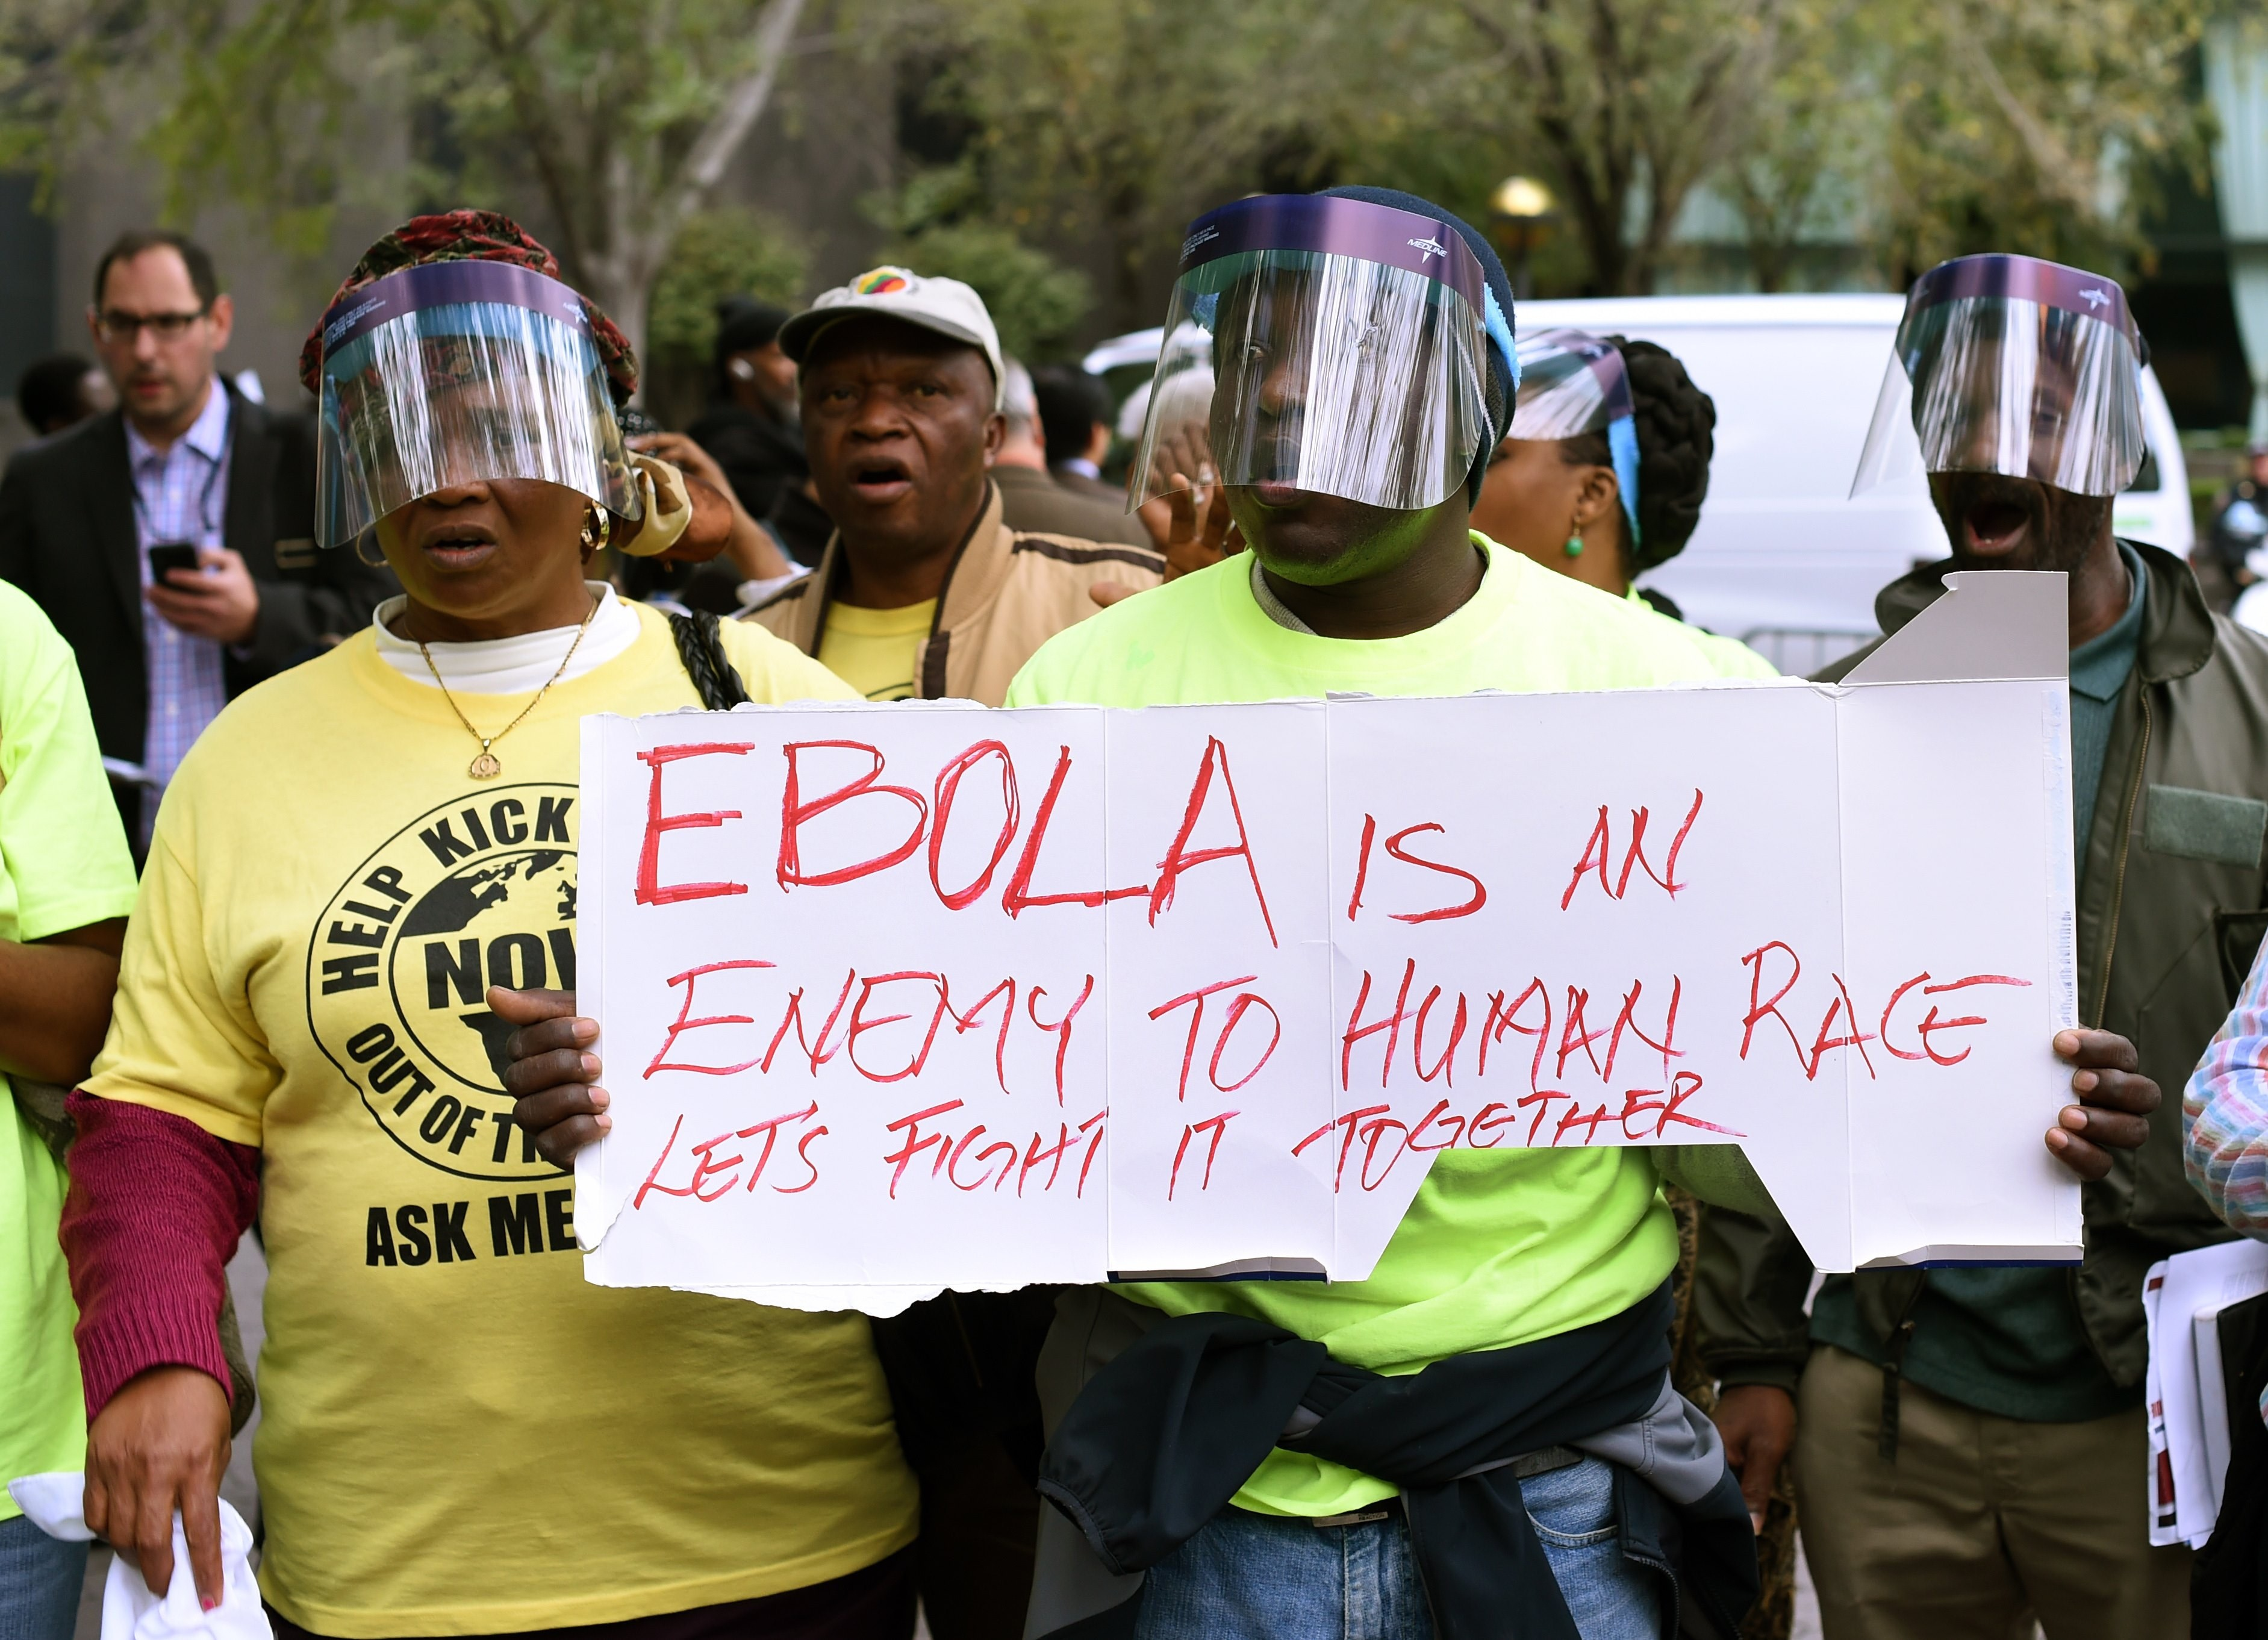 Demonstrators with the United African Congress (UAC) hold a rally for the  Stop Ebola  movement in New York on October 24, 2014 the morning after it was confirmed that Doctor Craig Spencer, a member of Doctors Without Borders, who recently returned to New York from West Africa tested positive for Ebola, making him New York City's first Ebola patient.